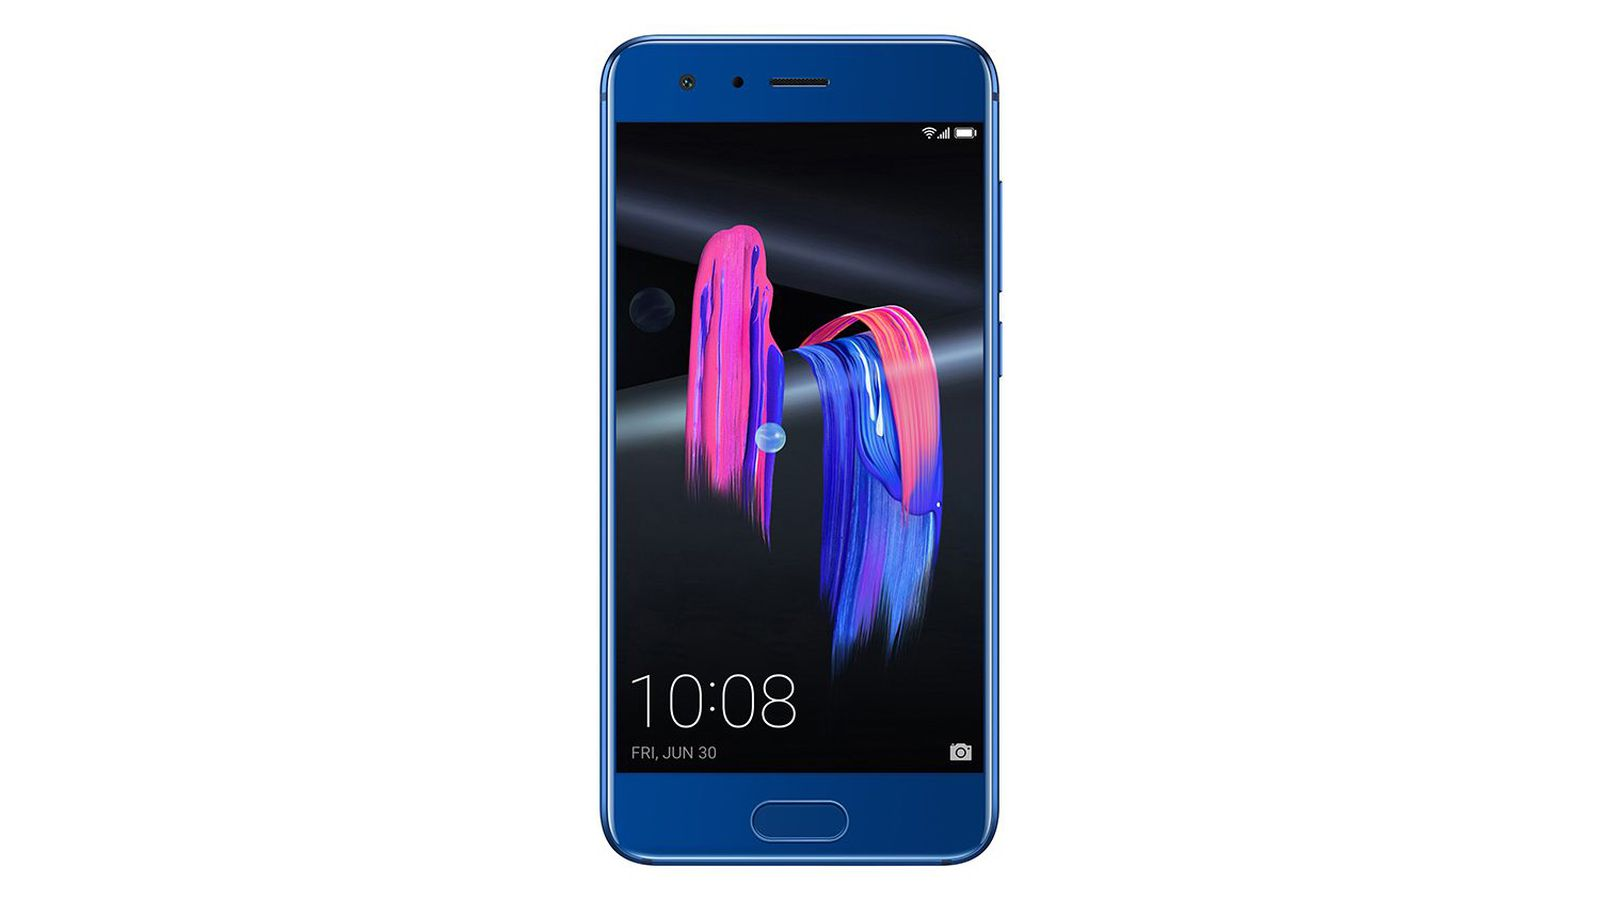 The Honor 9 is Now Available in Europe